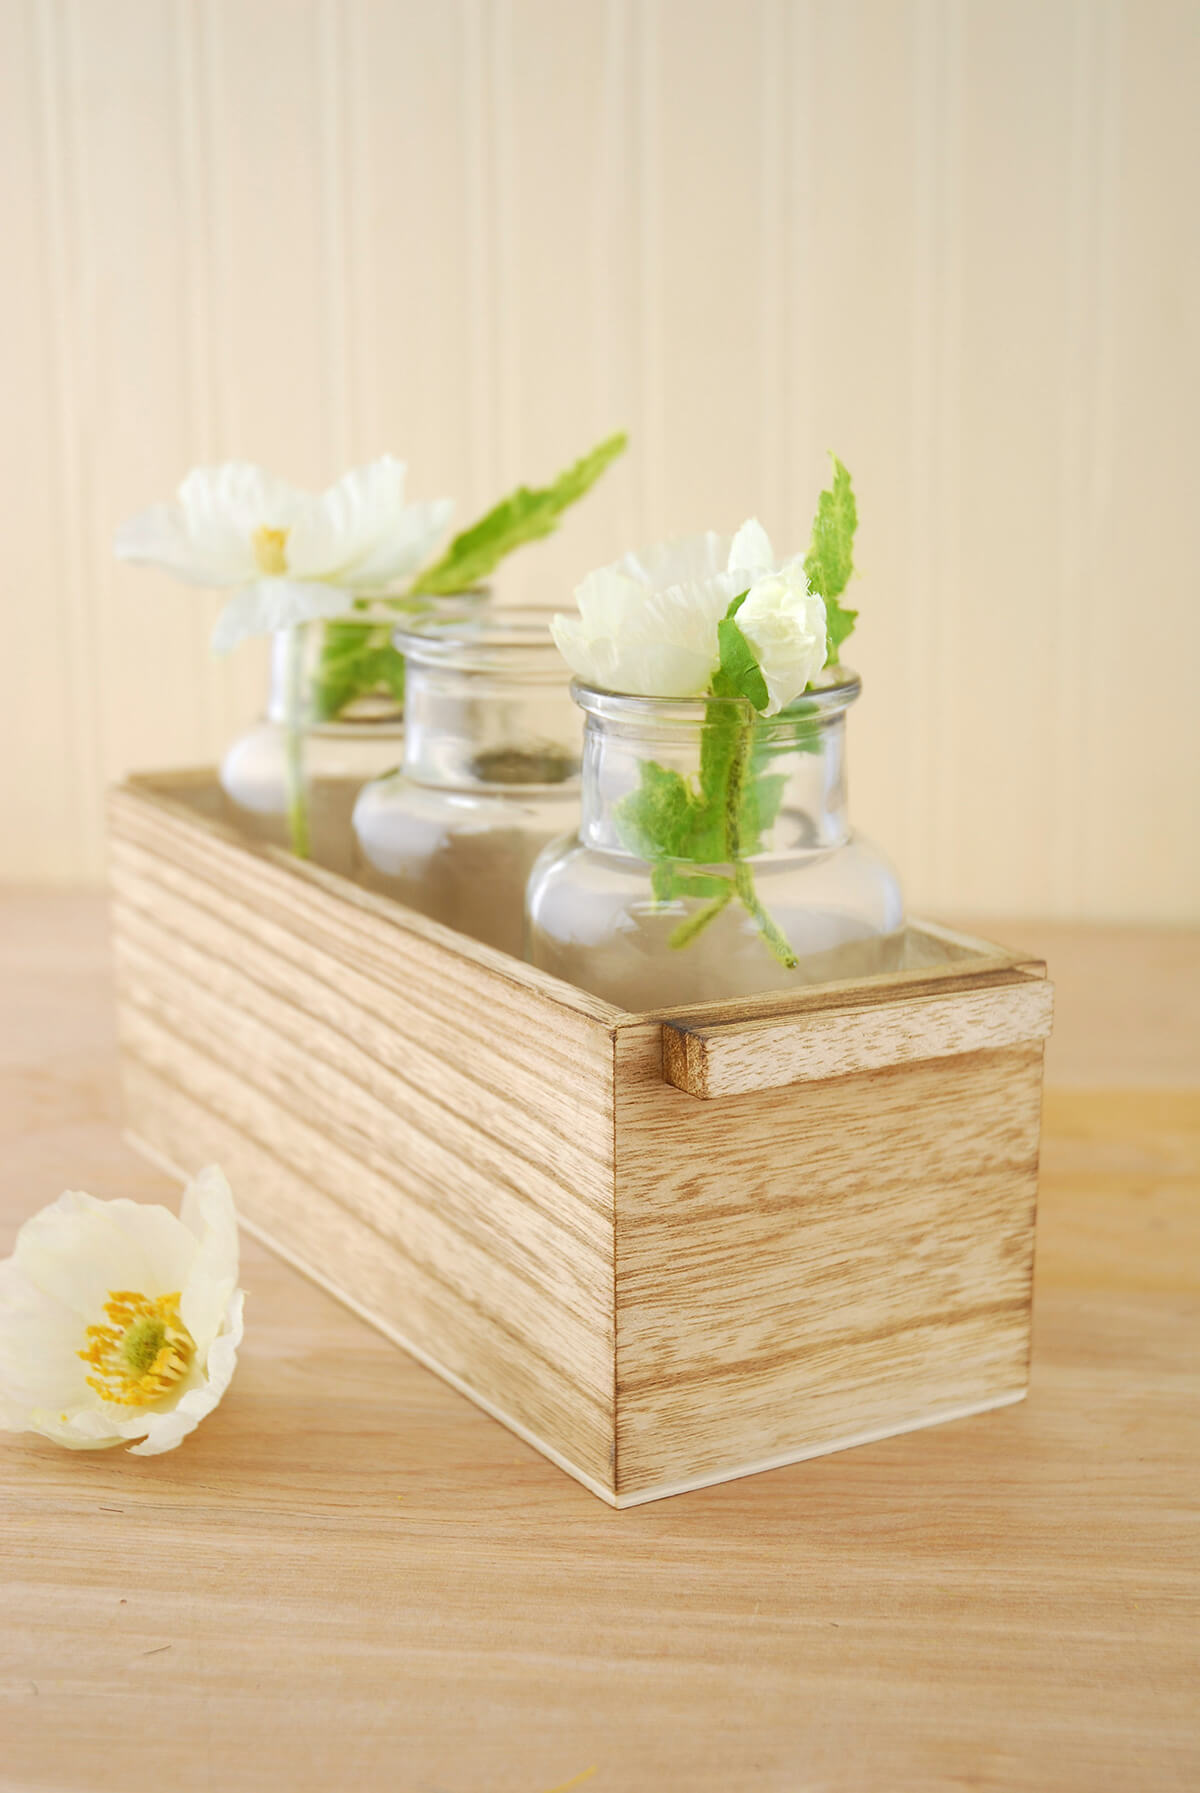 3 Glass Bottle Vases In Wood Box 10 Quot